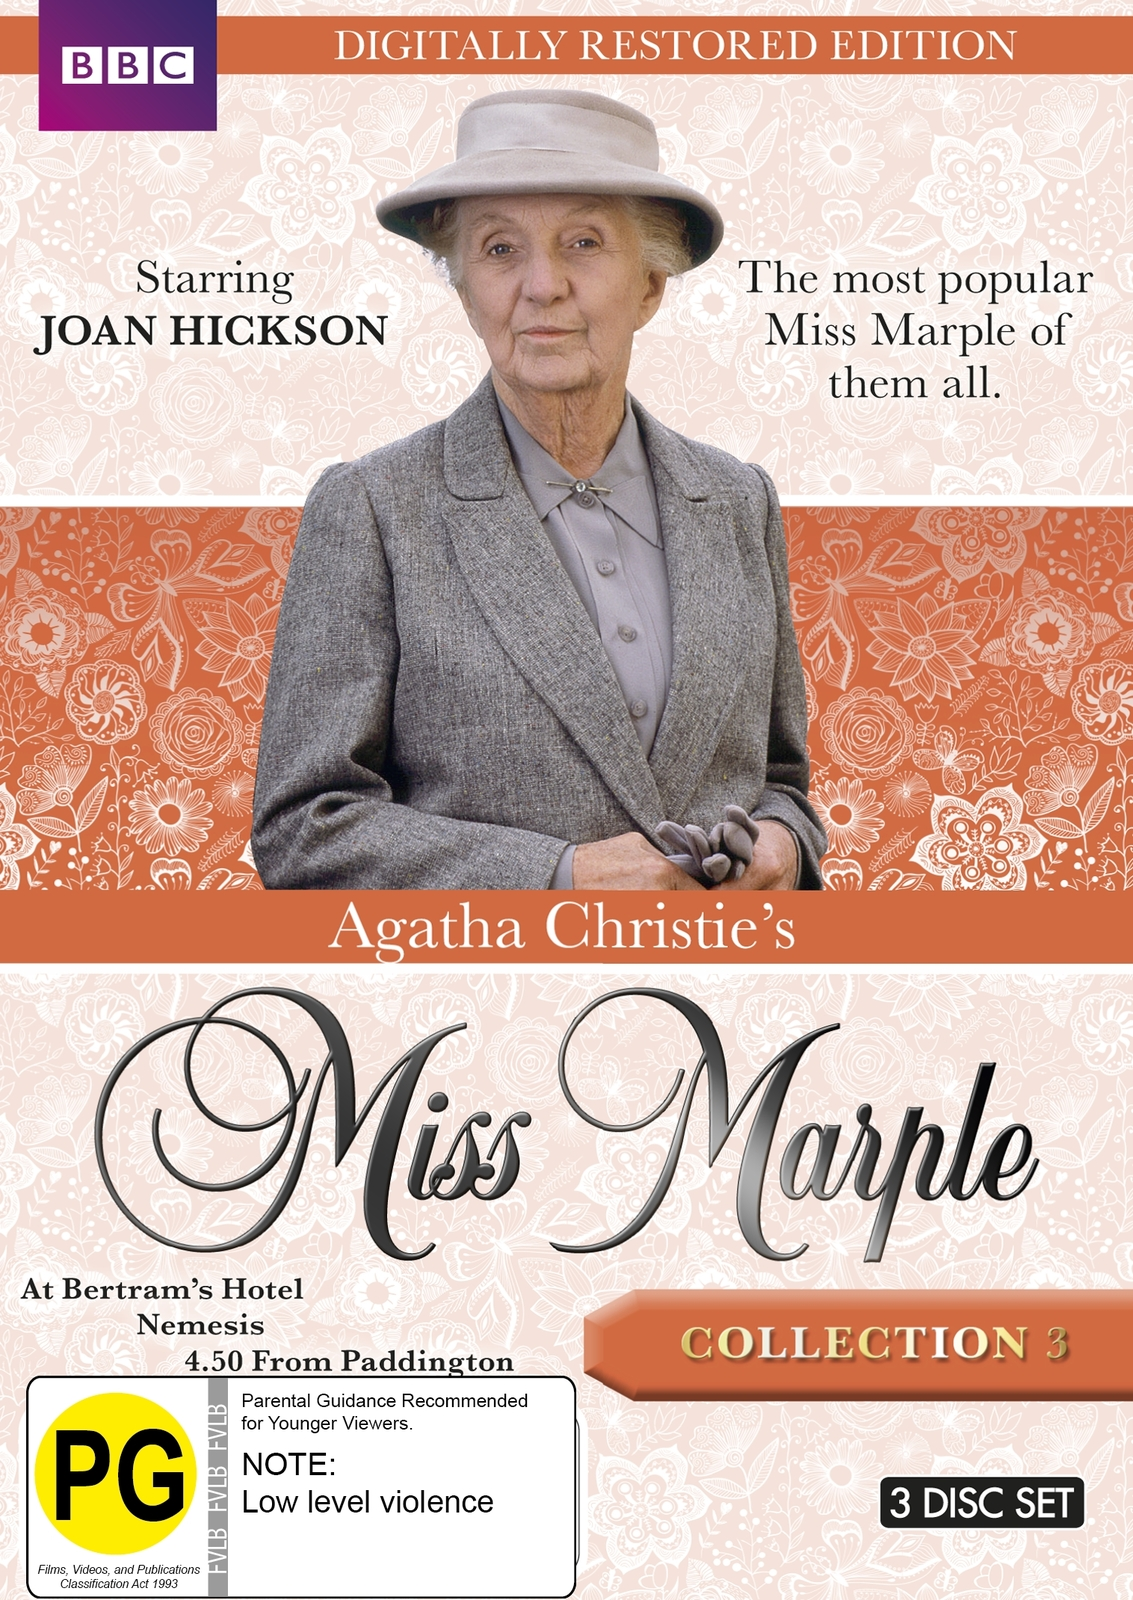 Agatha Christie's Miss Marple - Collection 3 (Restored Edition) on DVD image